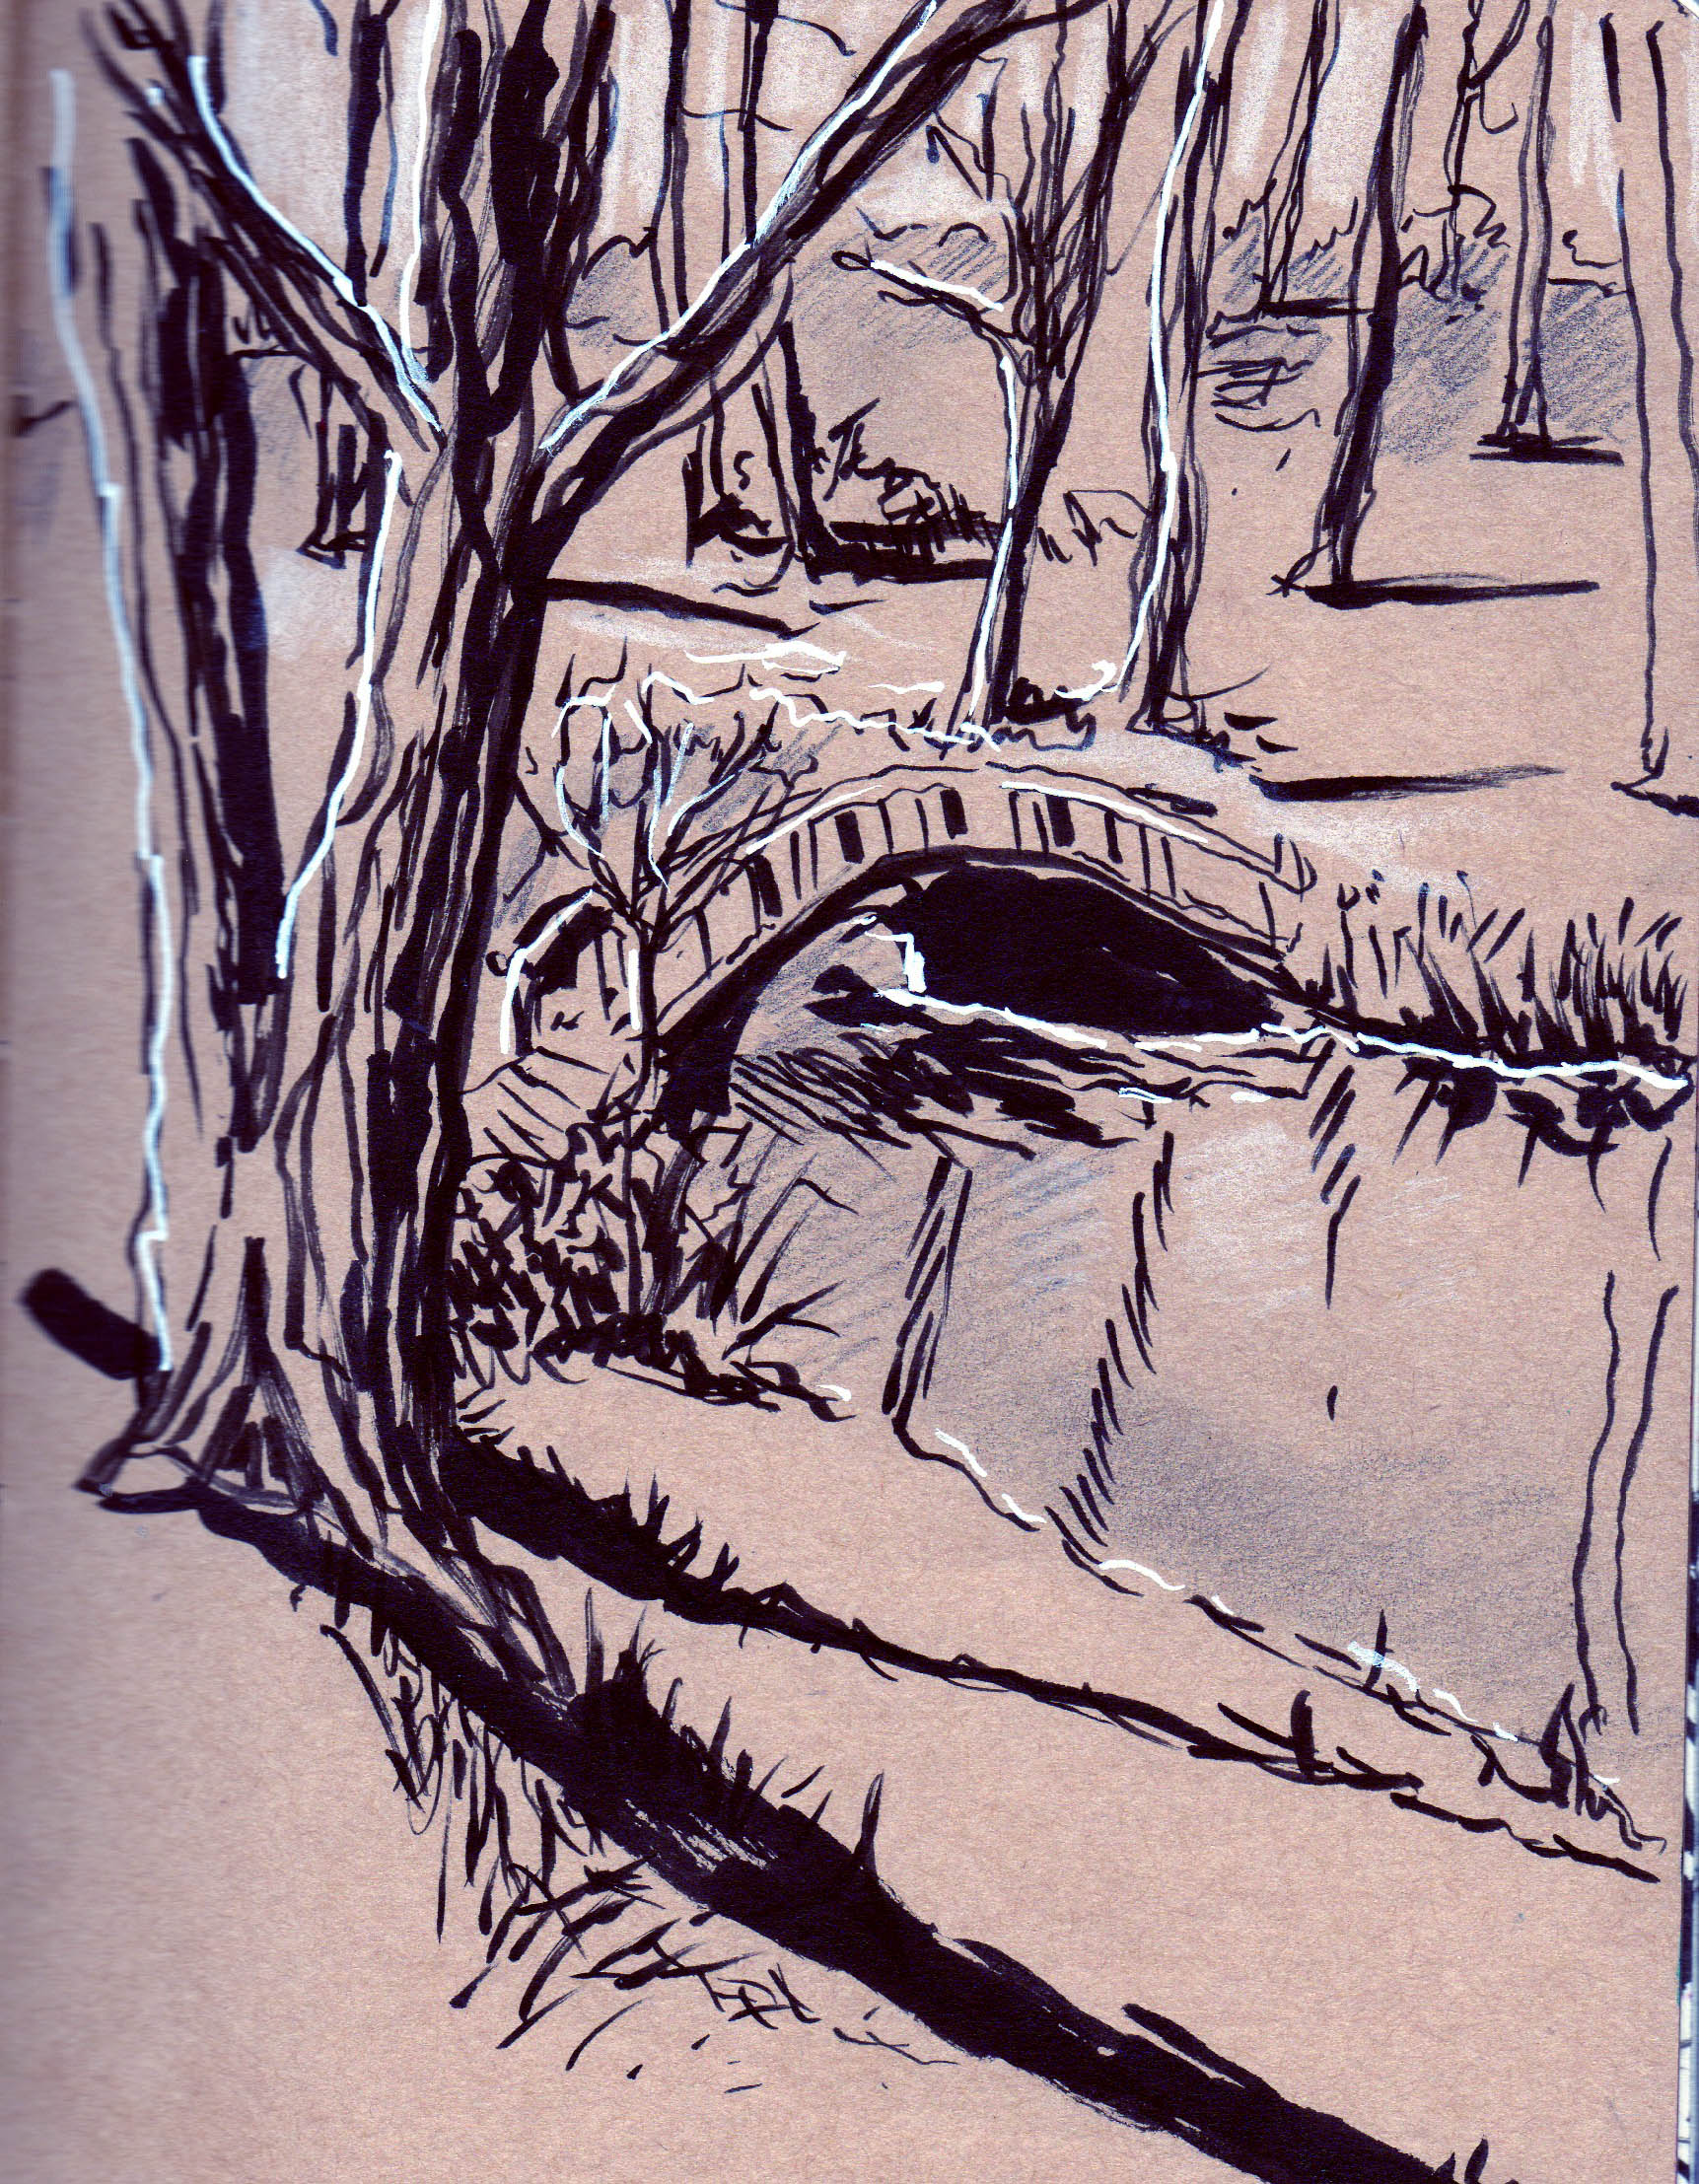 drawing of forest with tall tress, with a stream and small bridge in the foreground